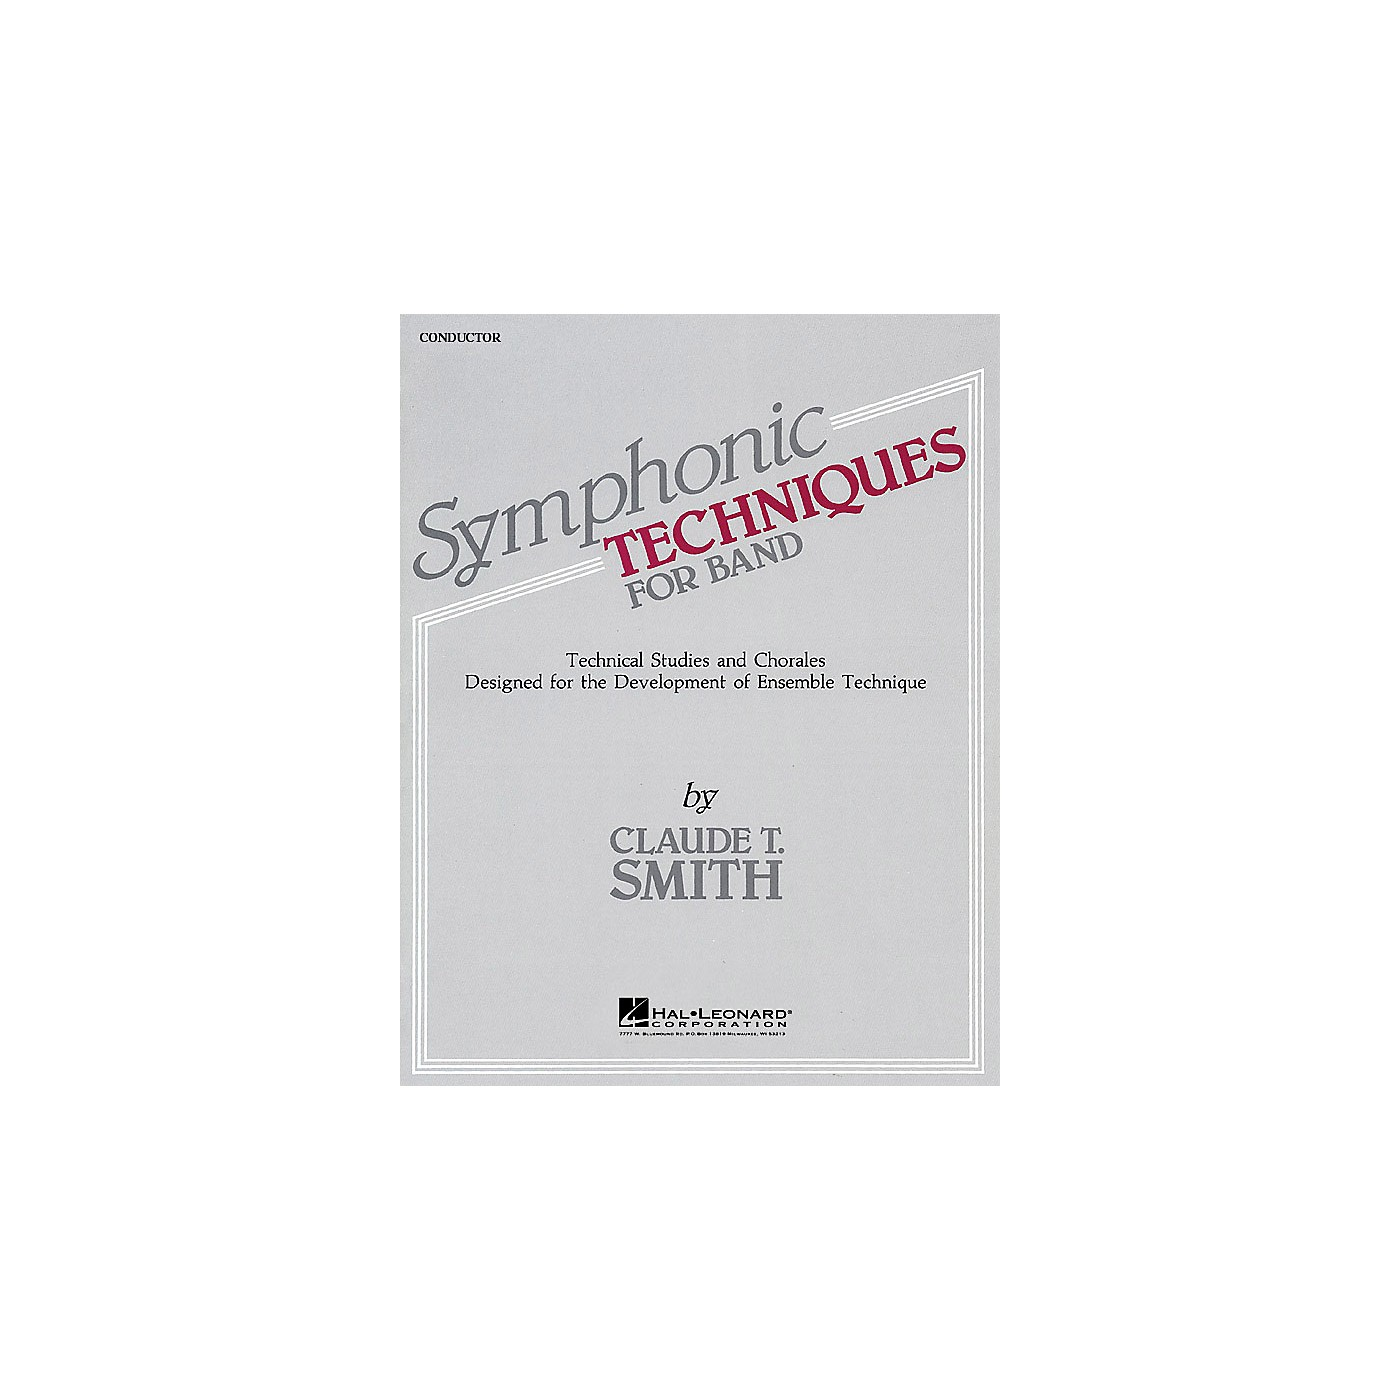 Hal Leonard Symphonic Techniques for Band (Conductor Score) Concert Band Level 2-3 Composed by Claude T. Smith thumbnail